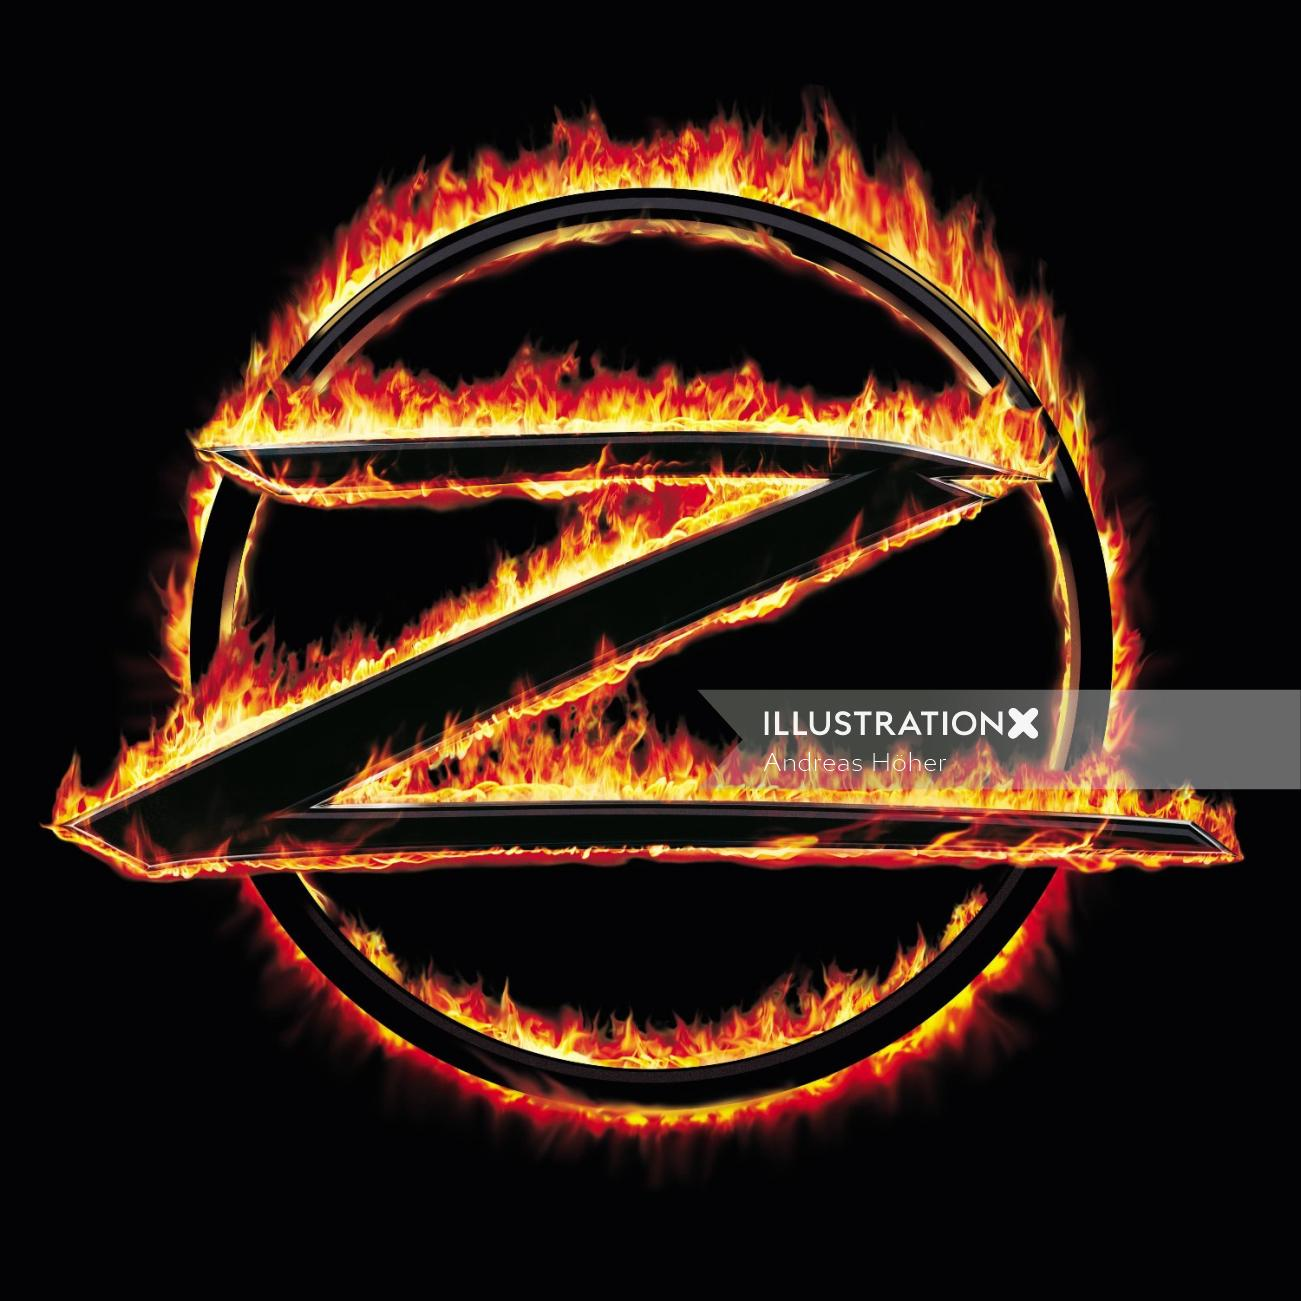 Graphic design of flaming opel-logo conversion